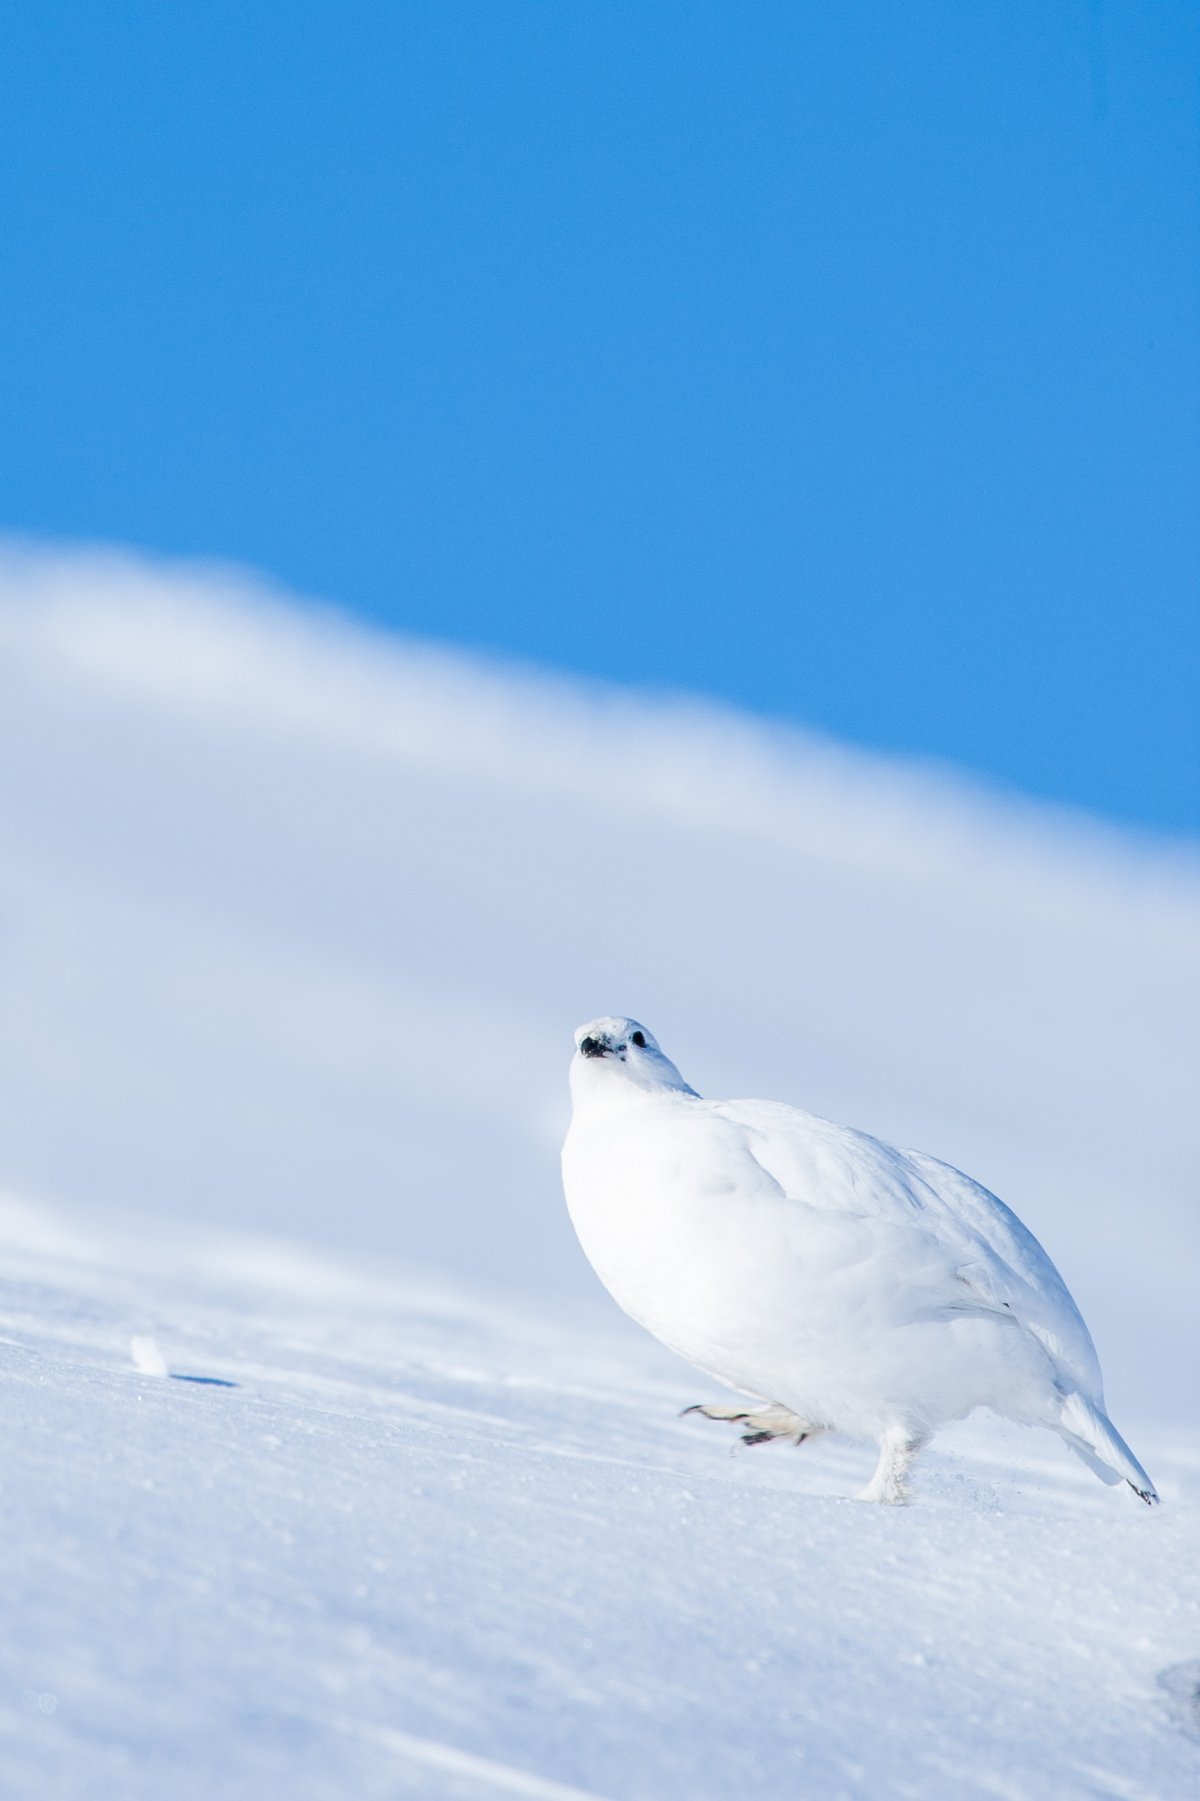 Ptarmigan walking up snow field